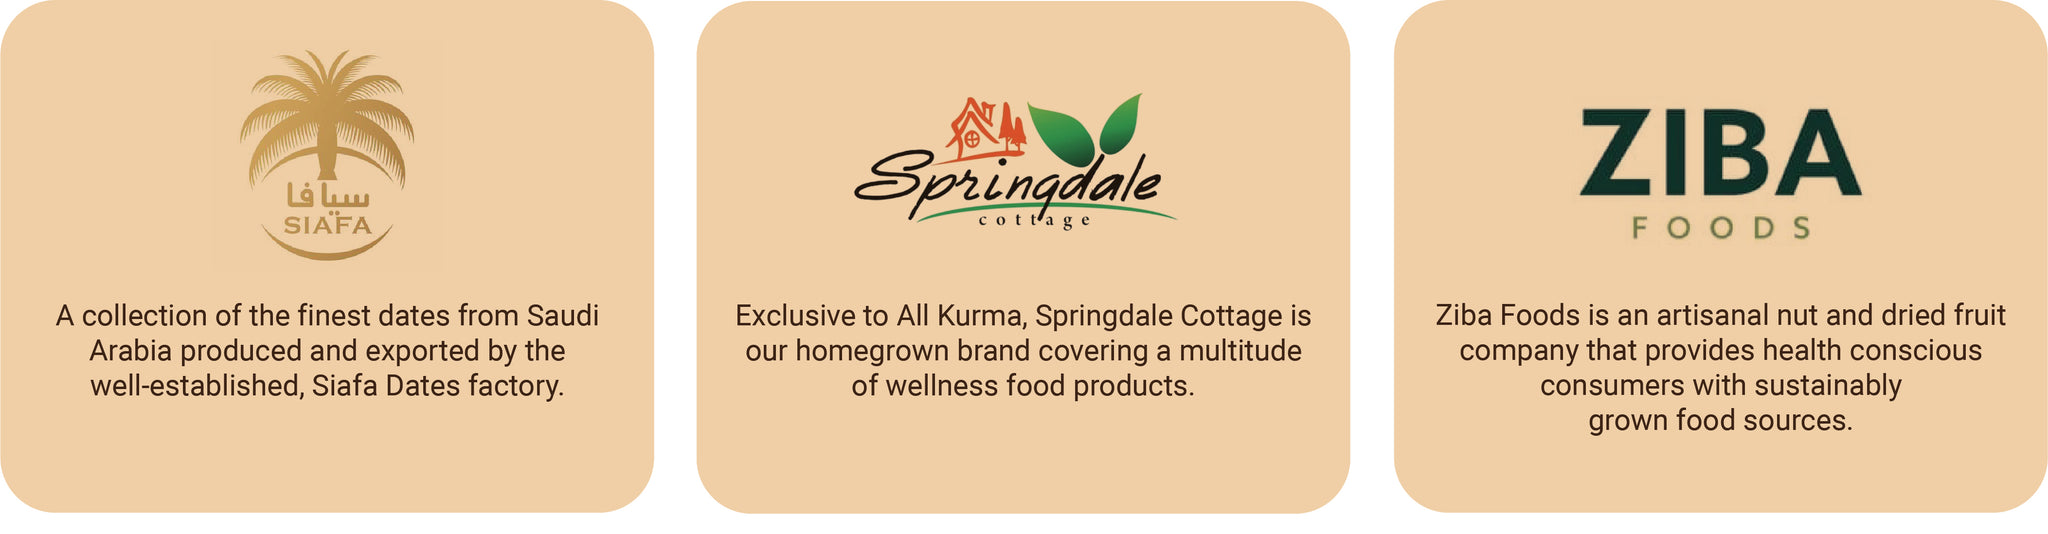 Siafa Dates, Springdale Cottage, Ziba Foods, All Kurma Singapore, Fruits and Nuts Singapore